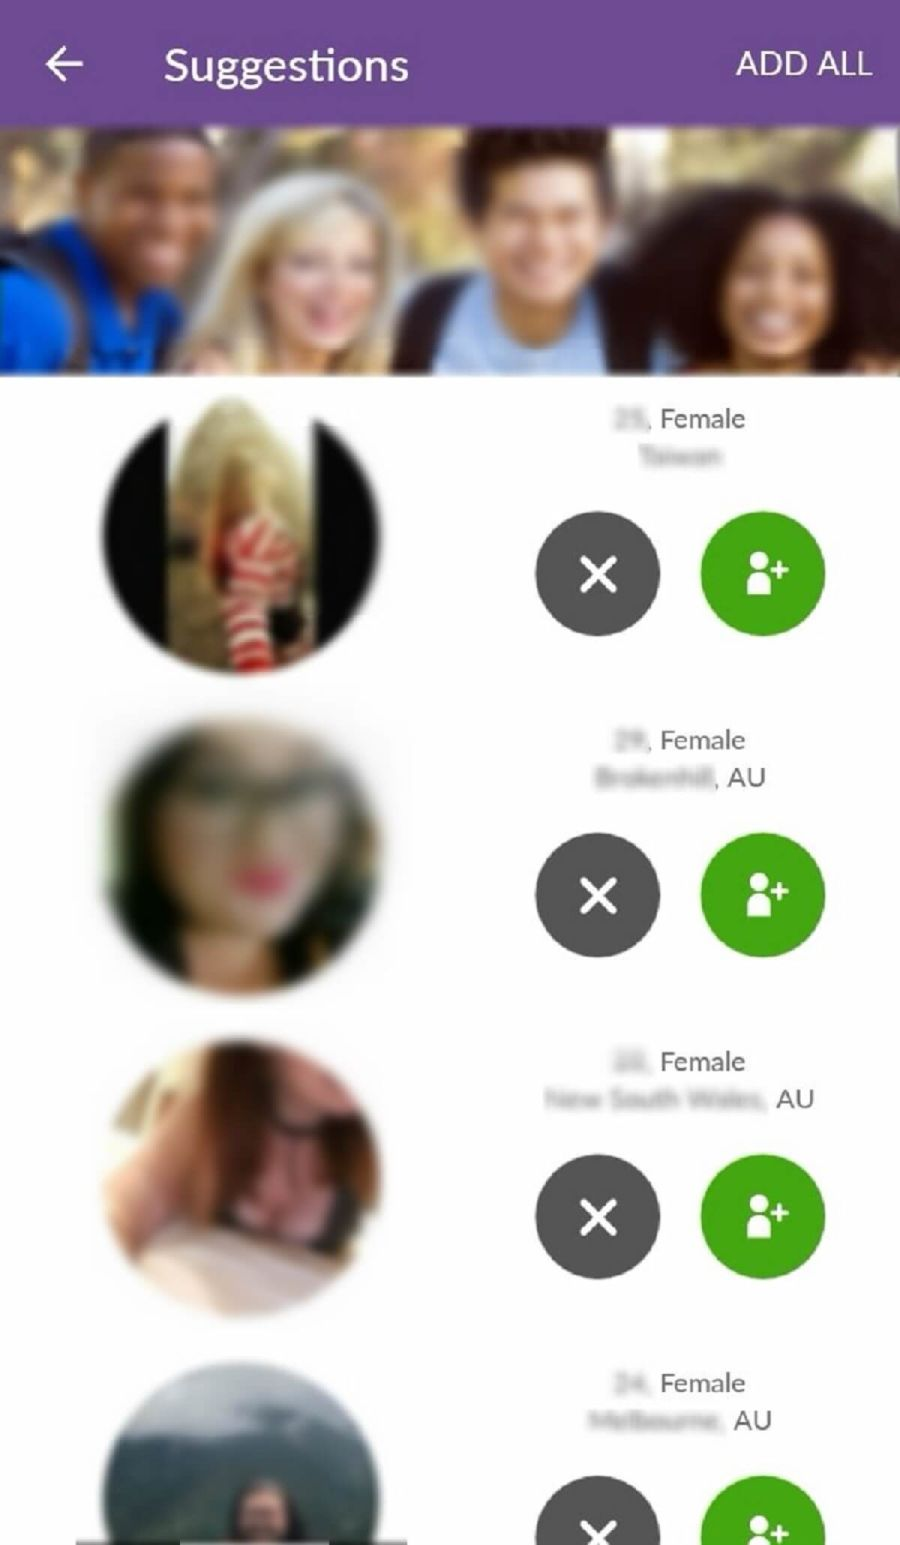 MeetMe Match Suggestions App